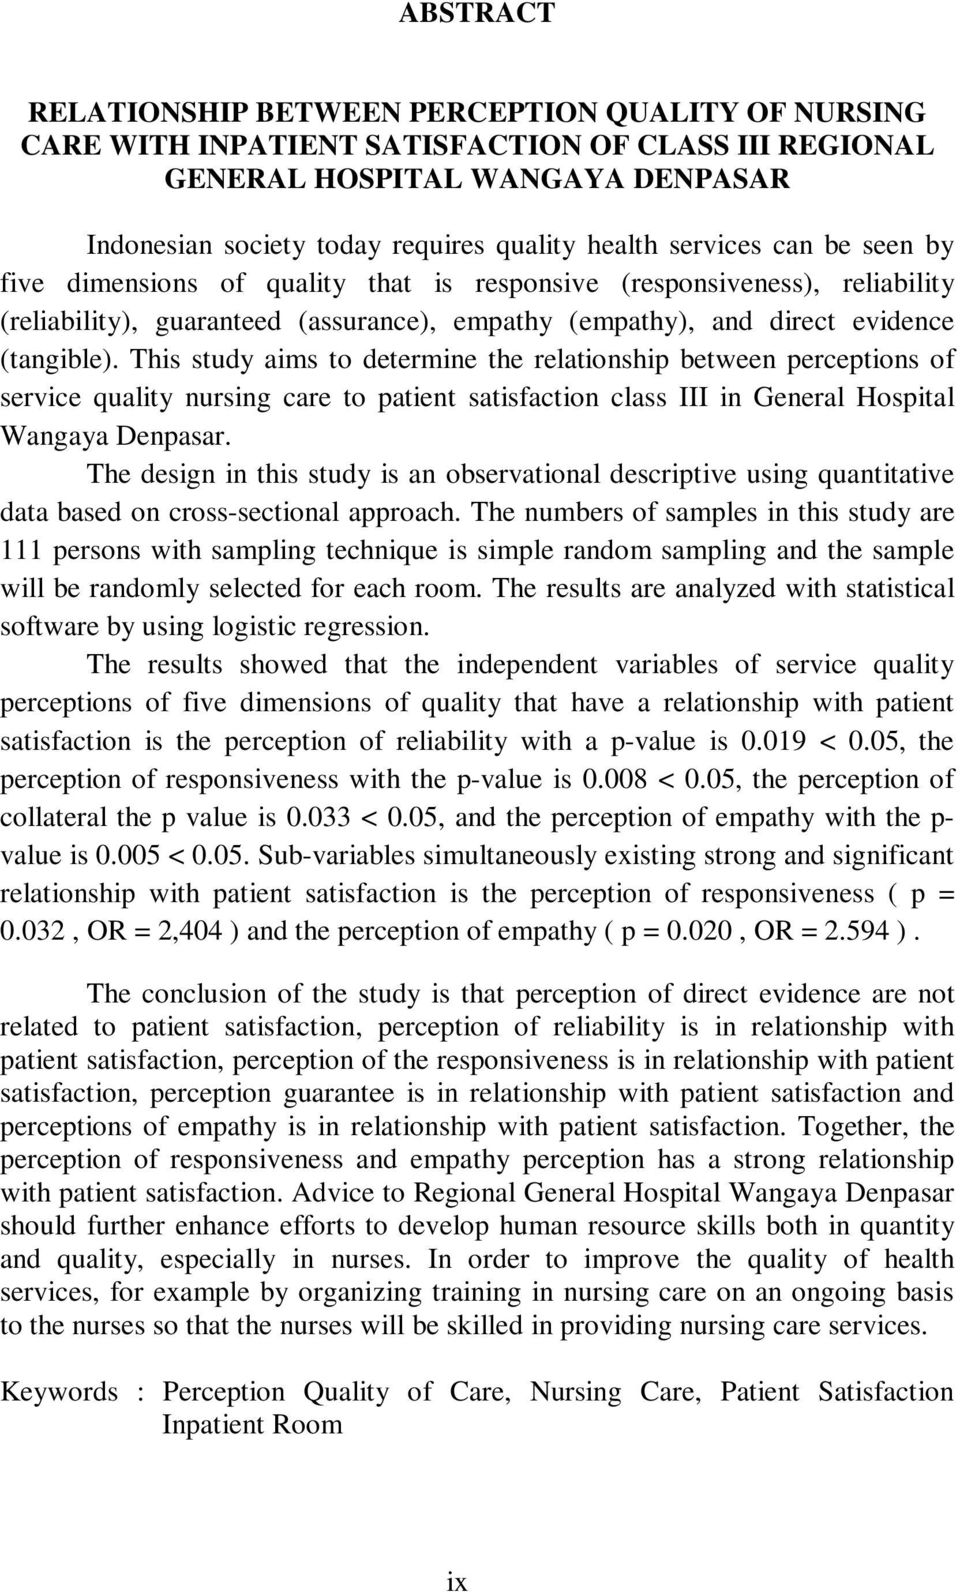 This study aims to determine the relationship between perceptions of service quality nursing care to patient satisfaction class III in General Hospital Wangaya Denpasar.